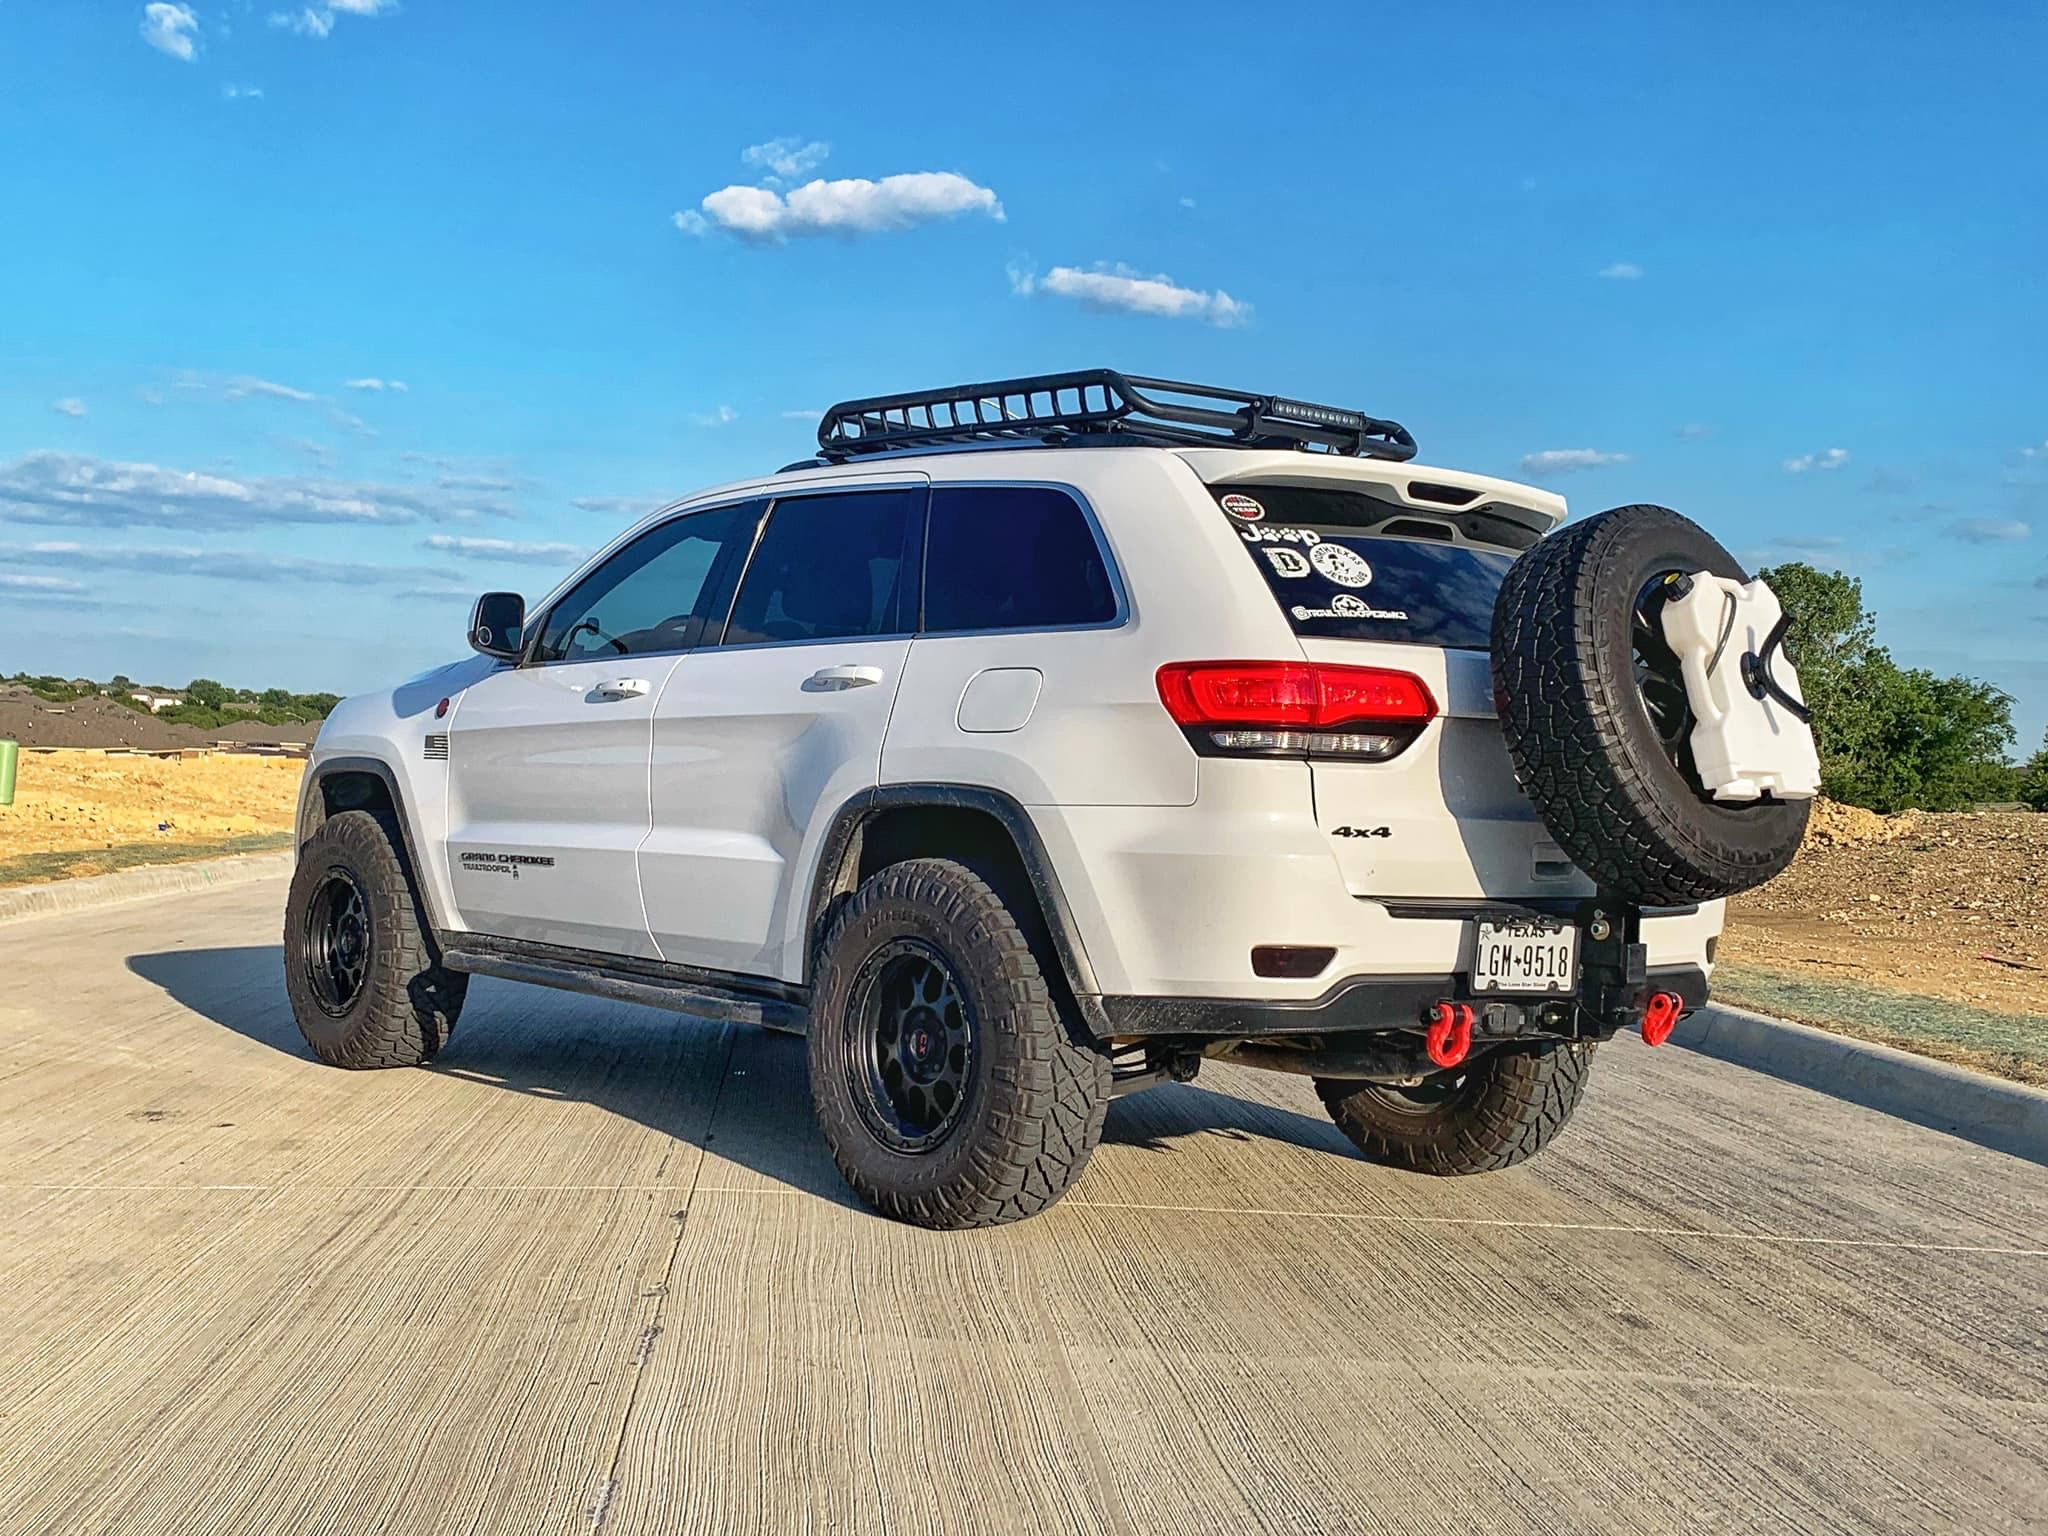 Pin by hunhul jo~😀 on Jeep grand cherokee in 2020 | Jeep ...